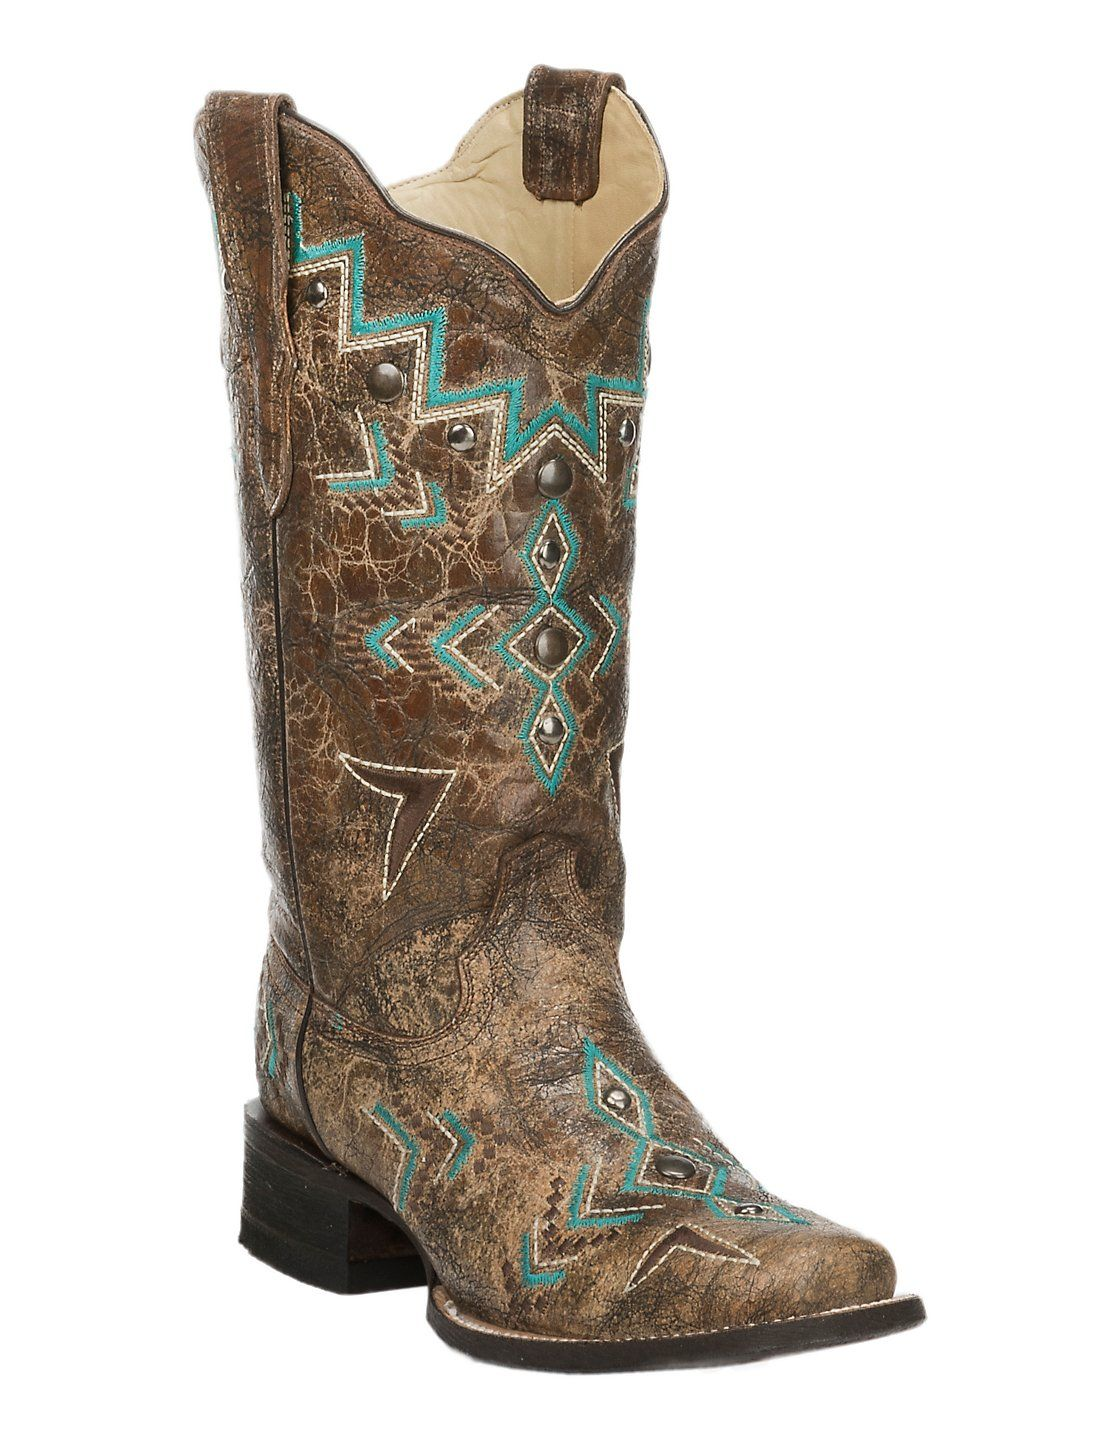 bf0a40183a6 Corral Women's Bronze with Turquoise Aztec Embroidery Square Toe ...